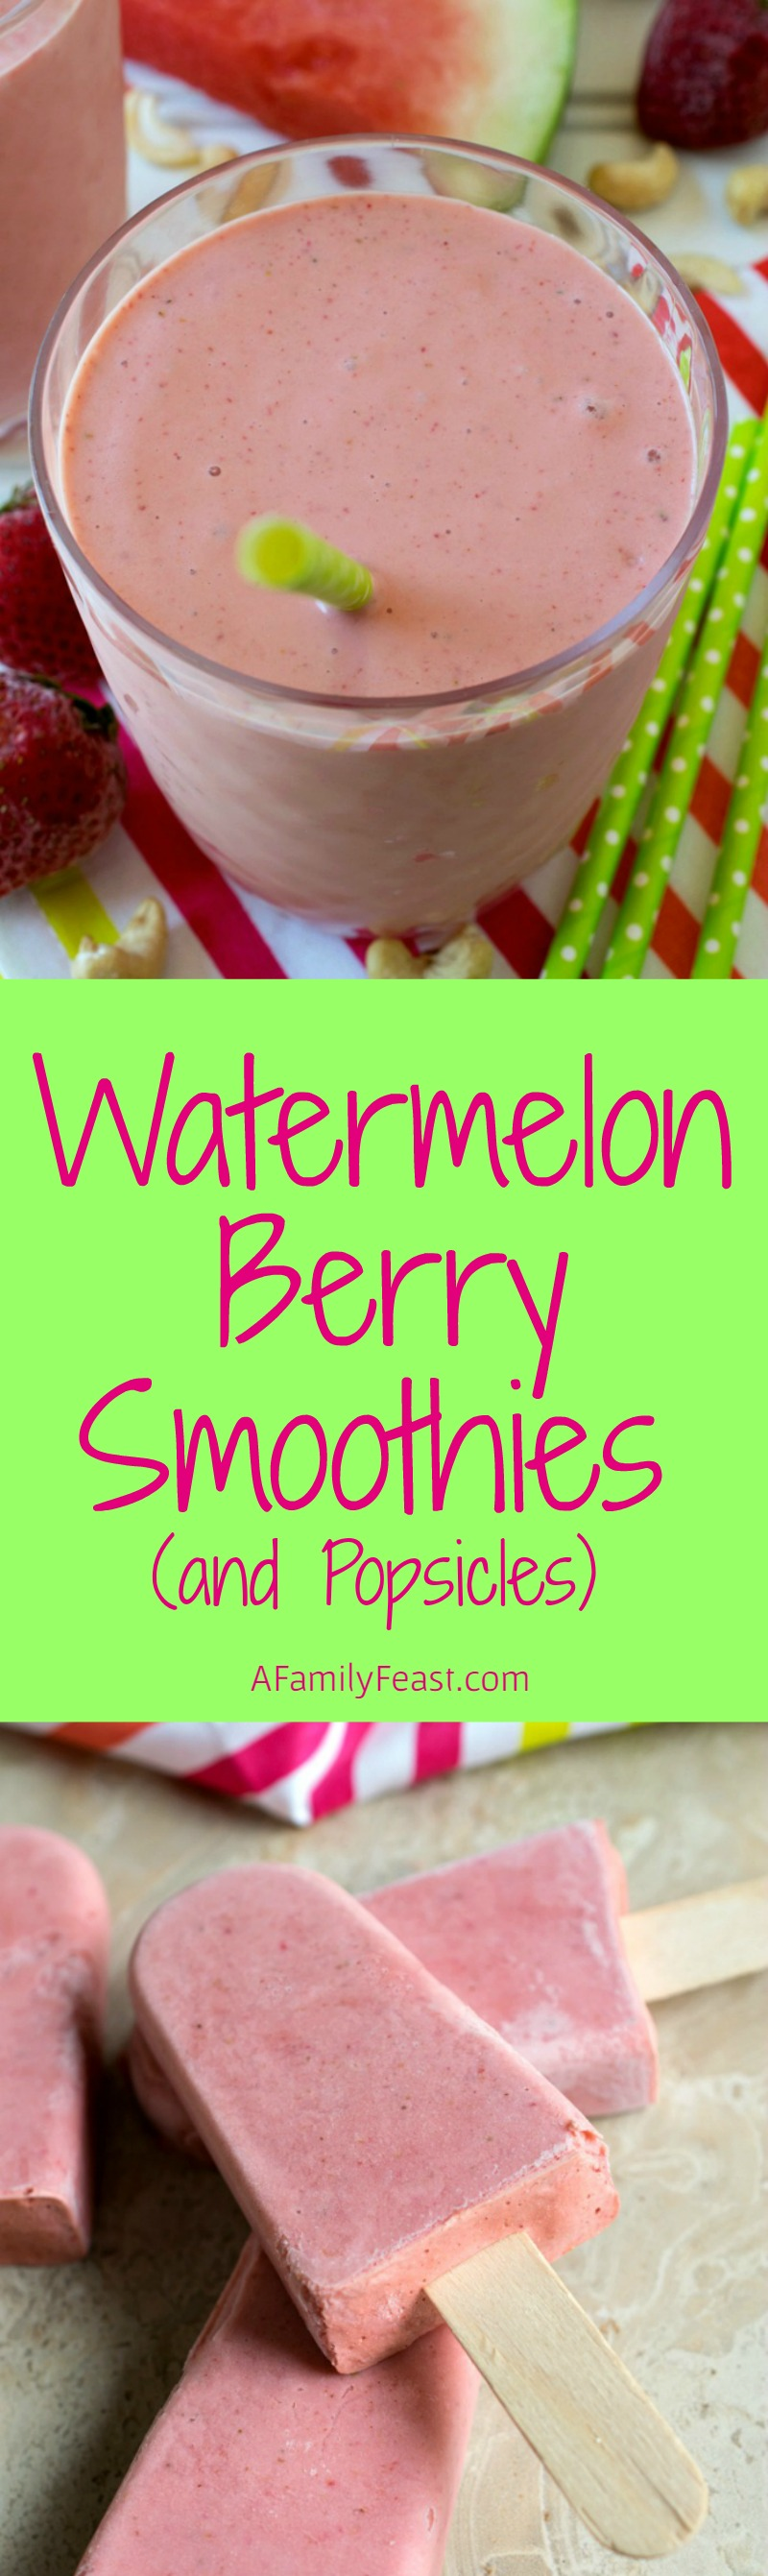 Watermelon Berry Smoothies (and Popsicles) - A Family Feast